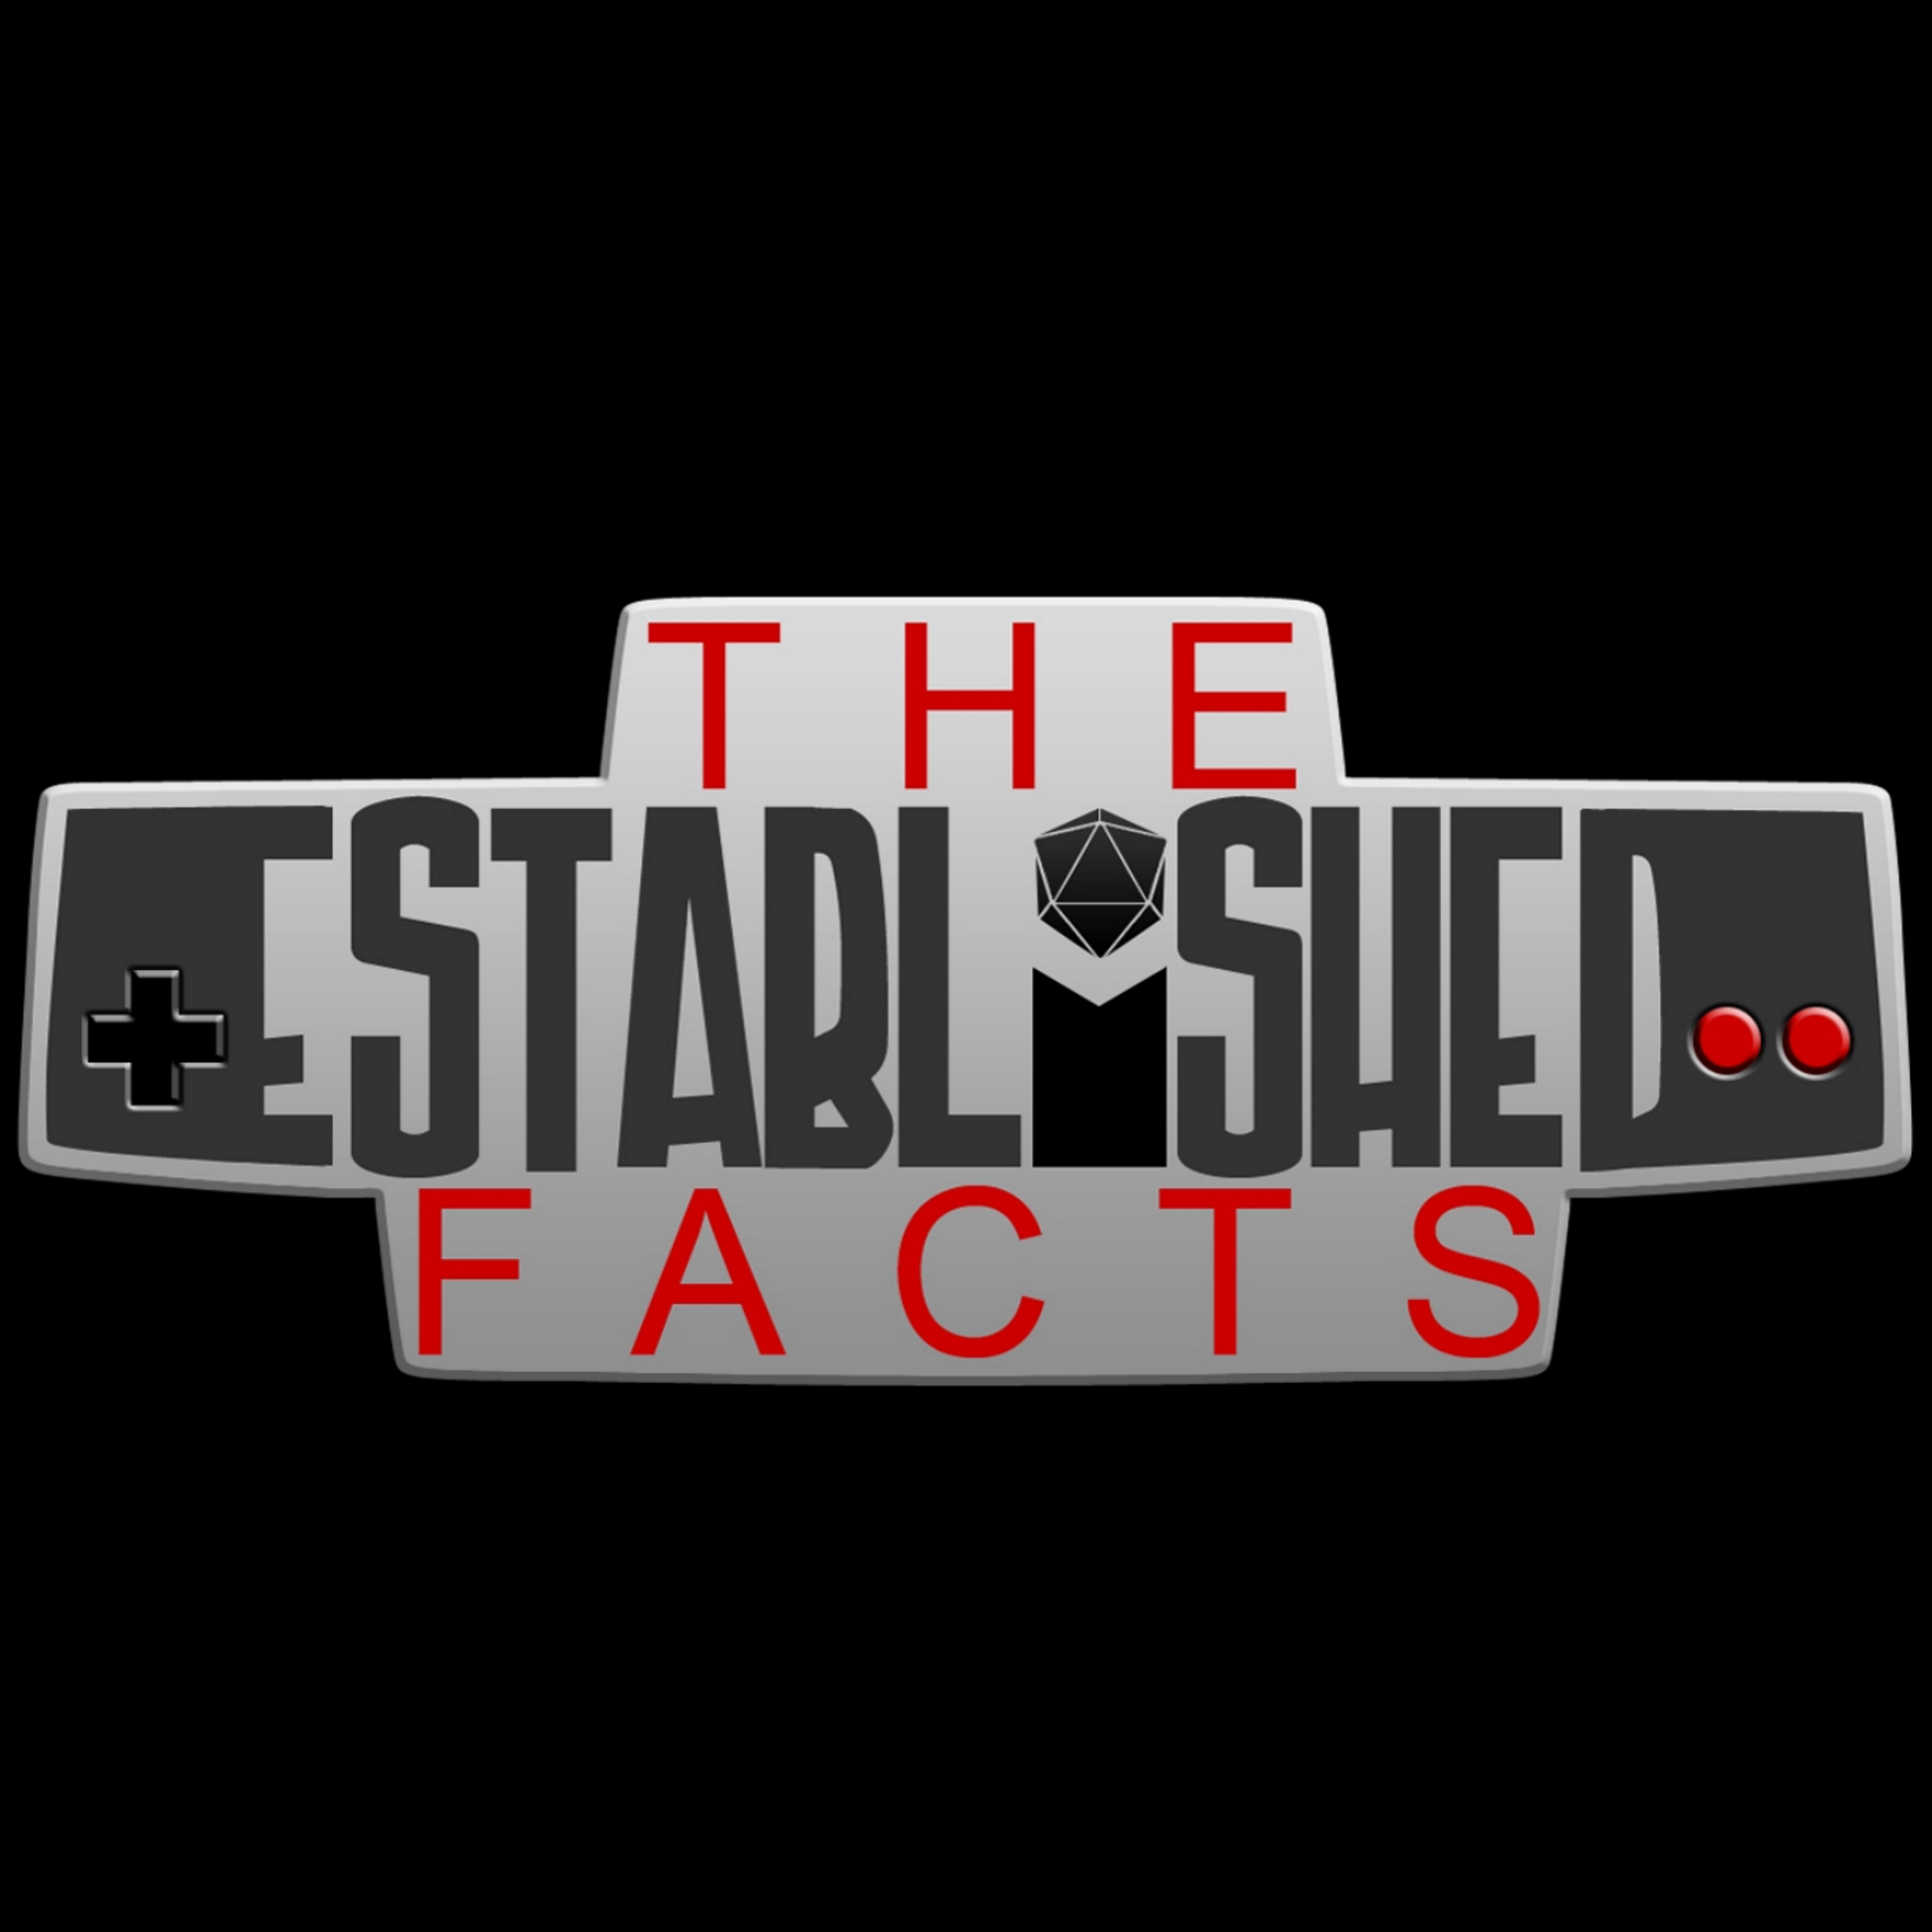 THE ESTABLiSHED FACTS